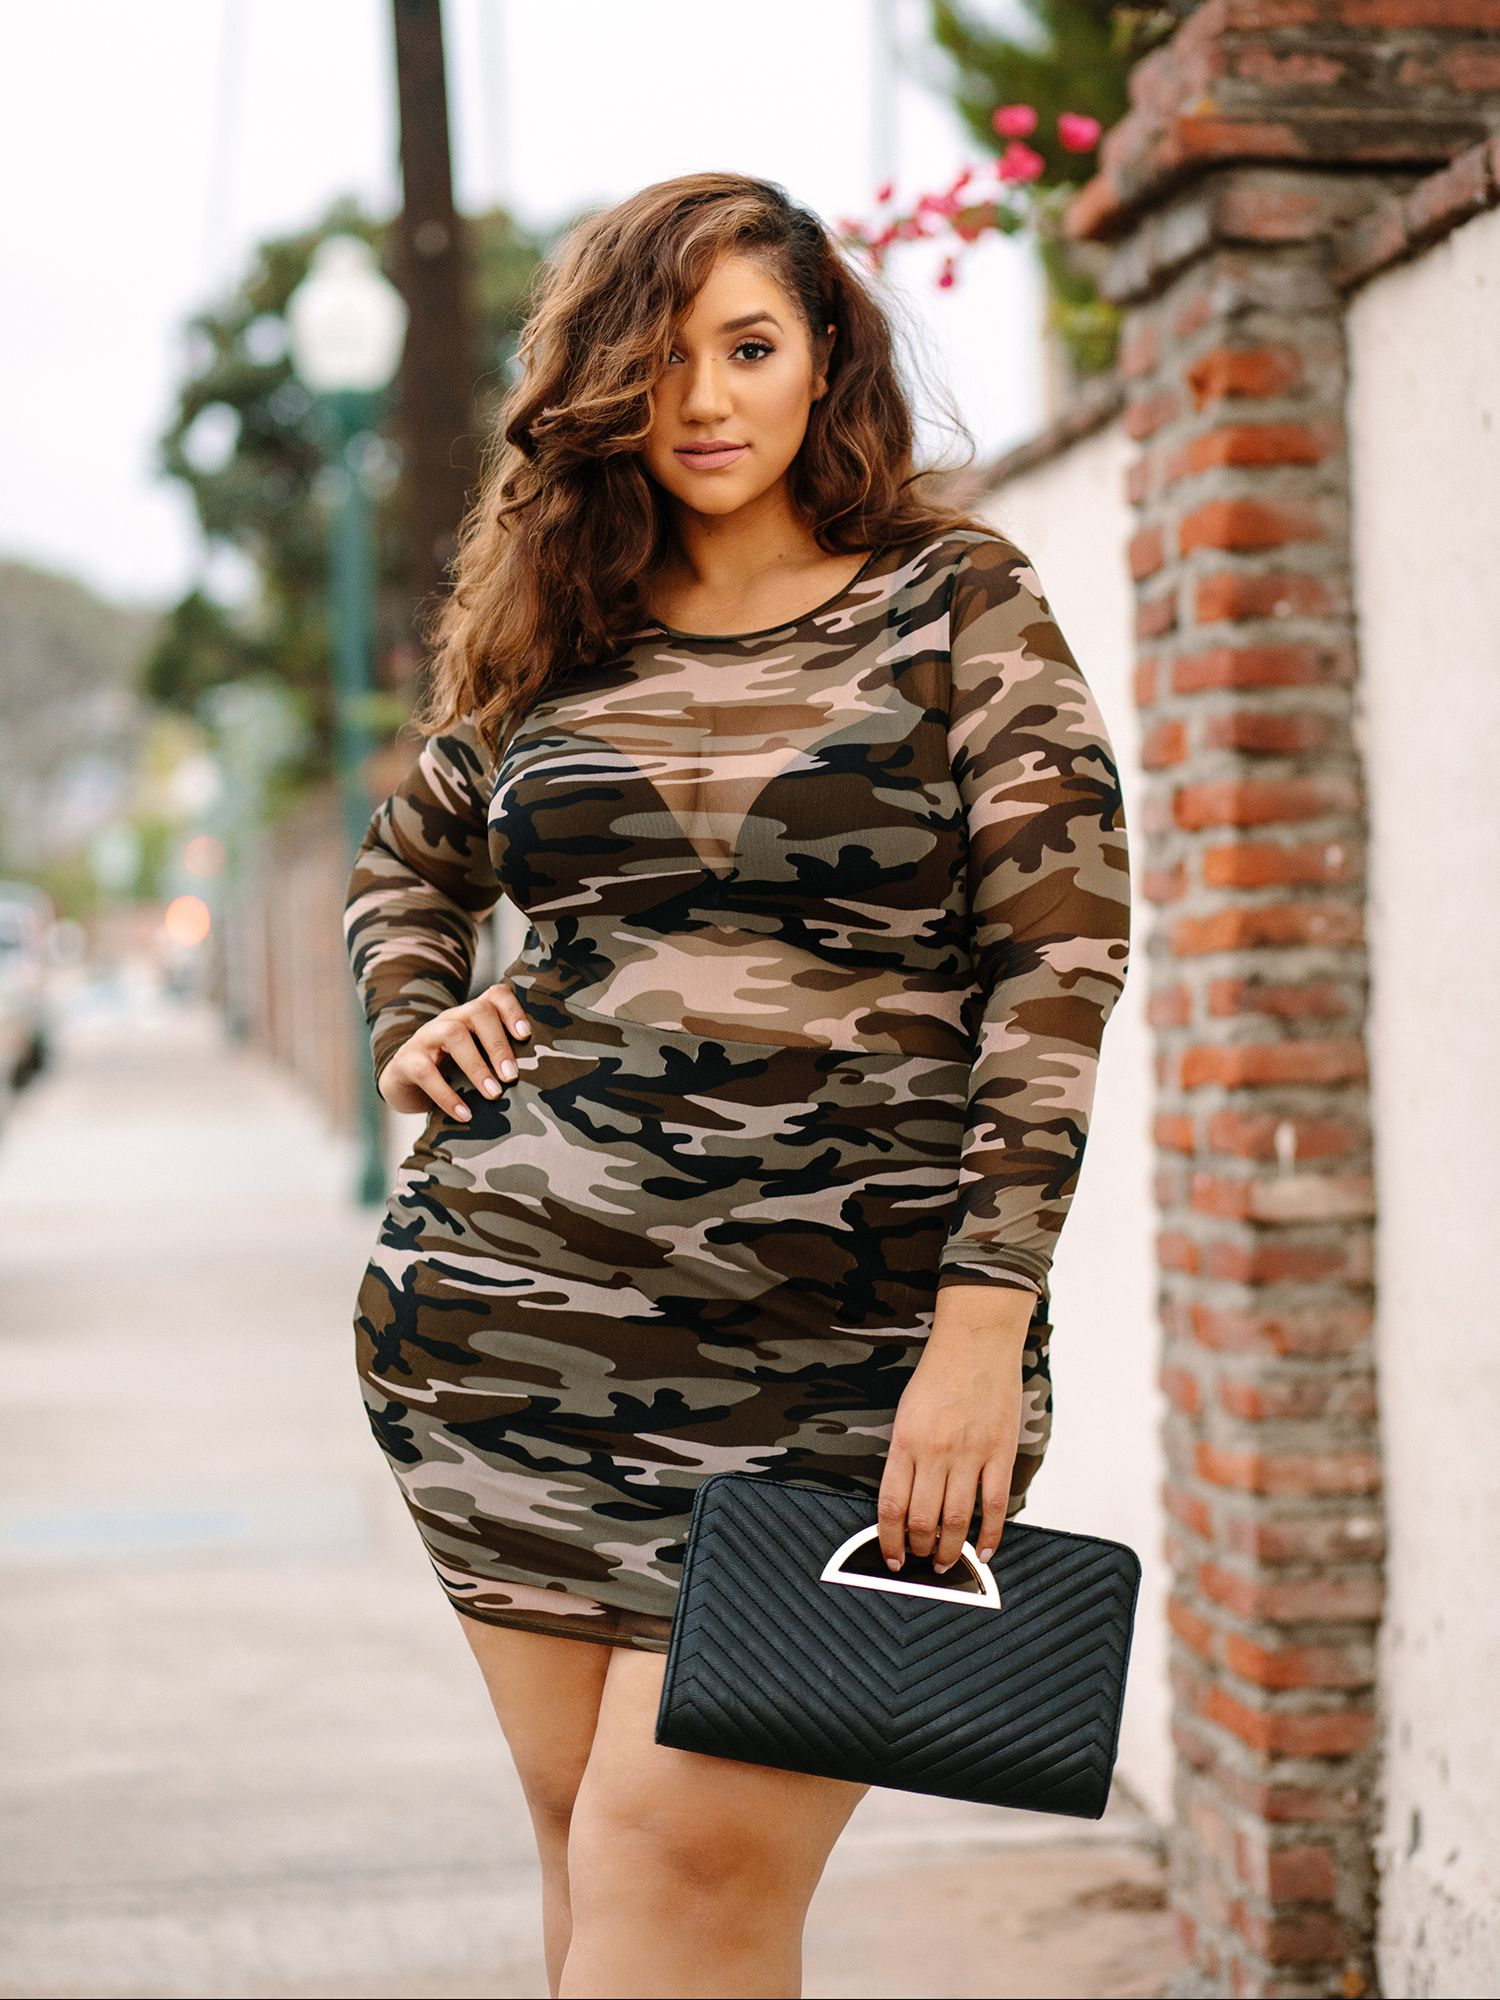 ba8d96eb5aa30d SATURDAY NIGHT SIZZLE 🔥  Dresstination (Camo Mesh Bodycon Dress) Details   A sexy mesh bodycon dress with a fierce camouflage print. Pair with a  bralette